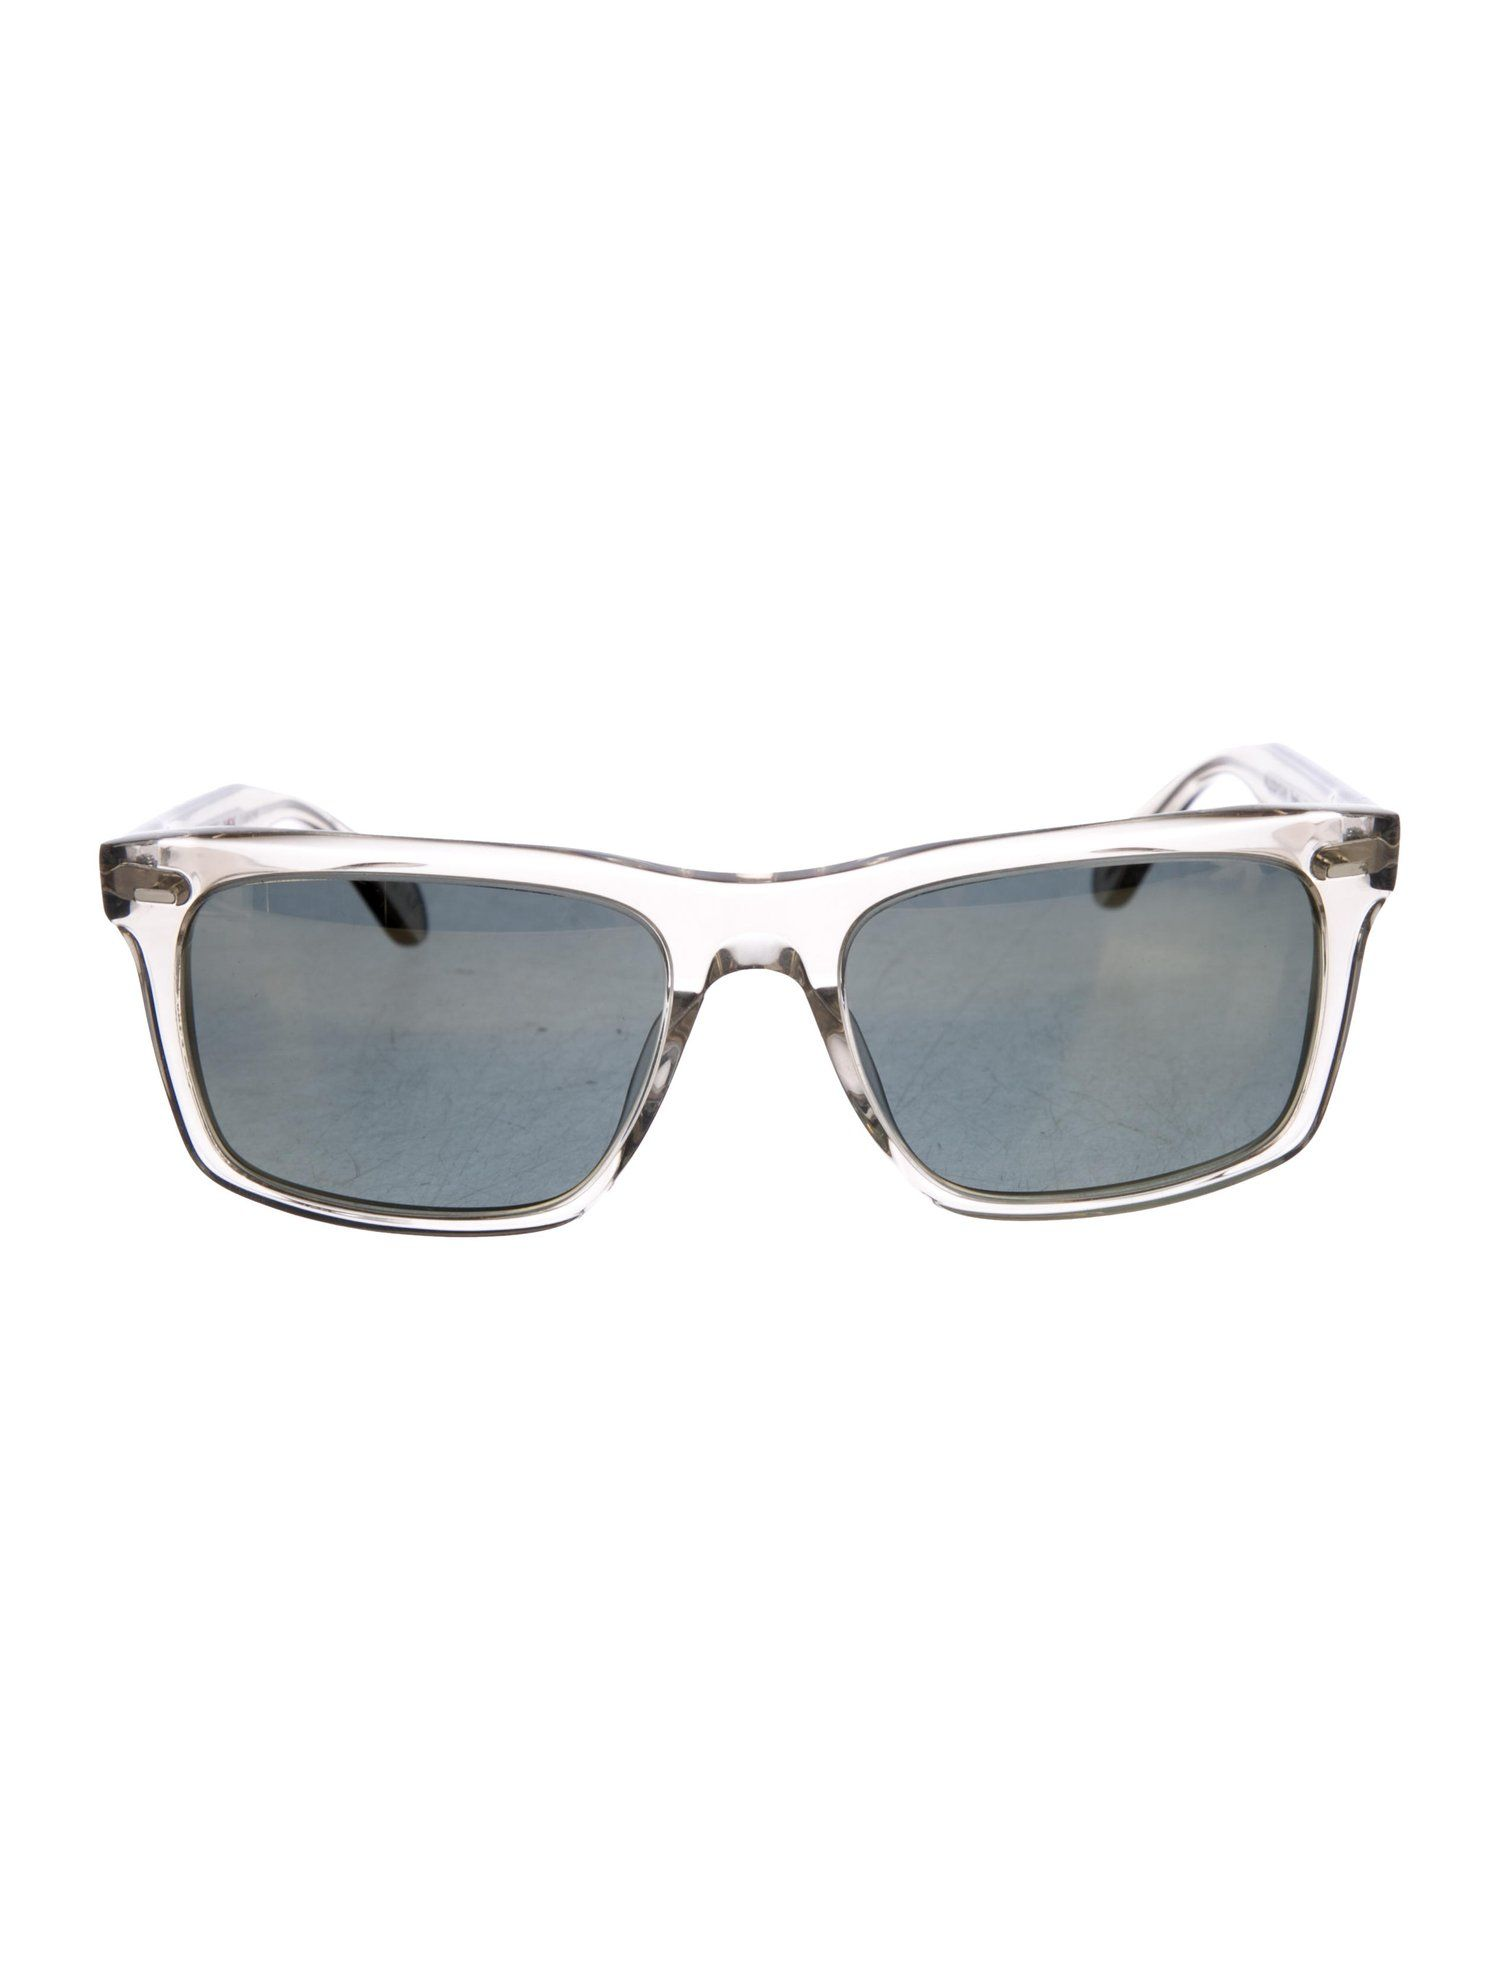 5a85fc1e9c Oliver Peoples Brodsky Square Sunglasses  Peoples  Oliver  Brodsky